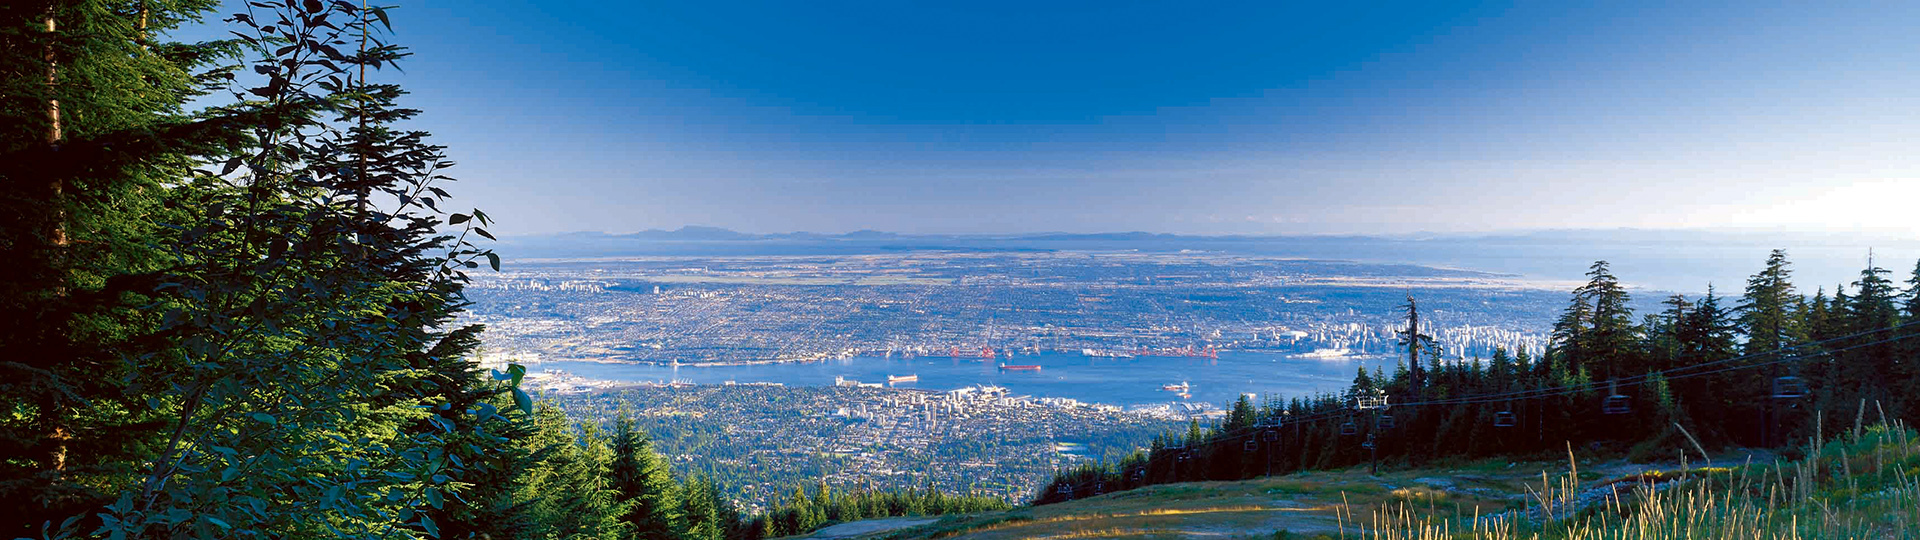 Grouse Mountain The Peak Of Vancouver